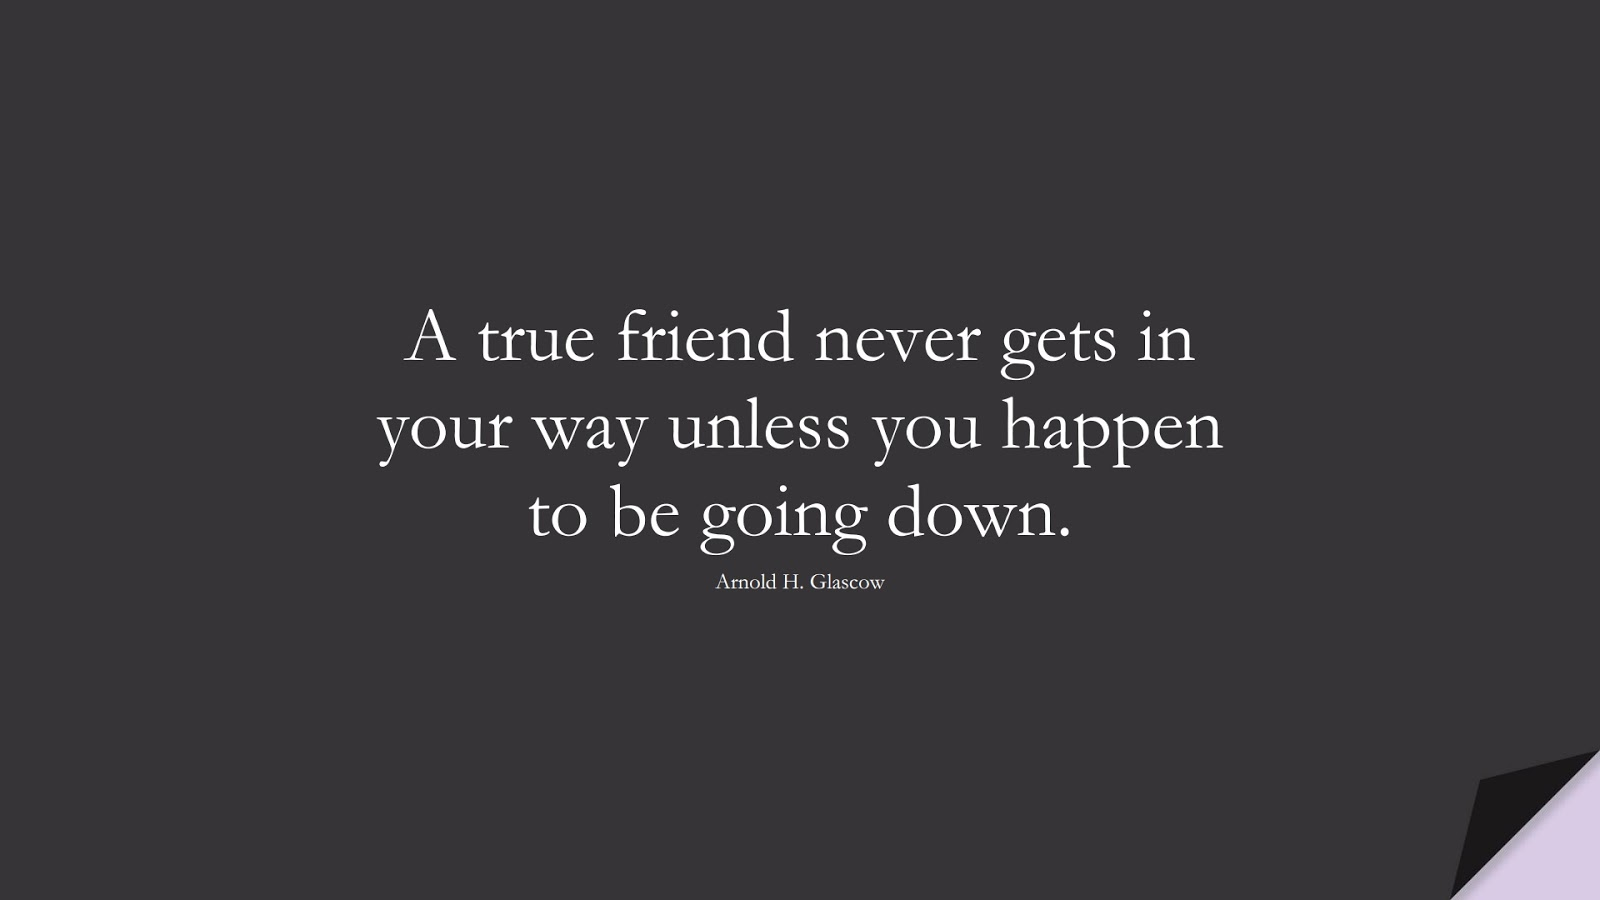 A true friend never gets in your way unless you happen to be going down. (Arnold H. Glascow);  #FriendshipQuotes